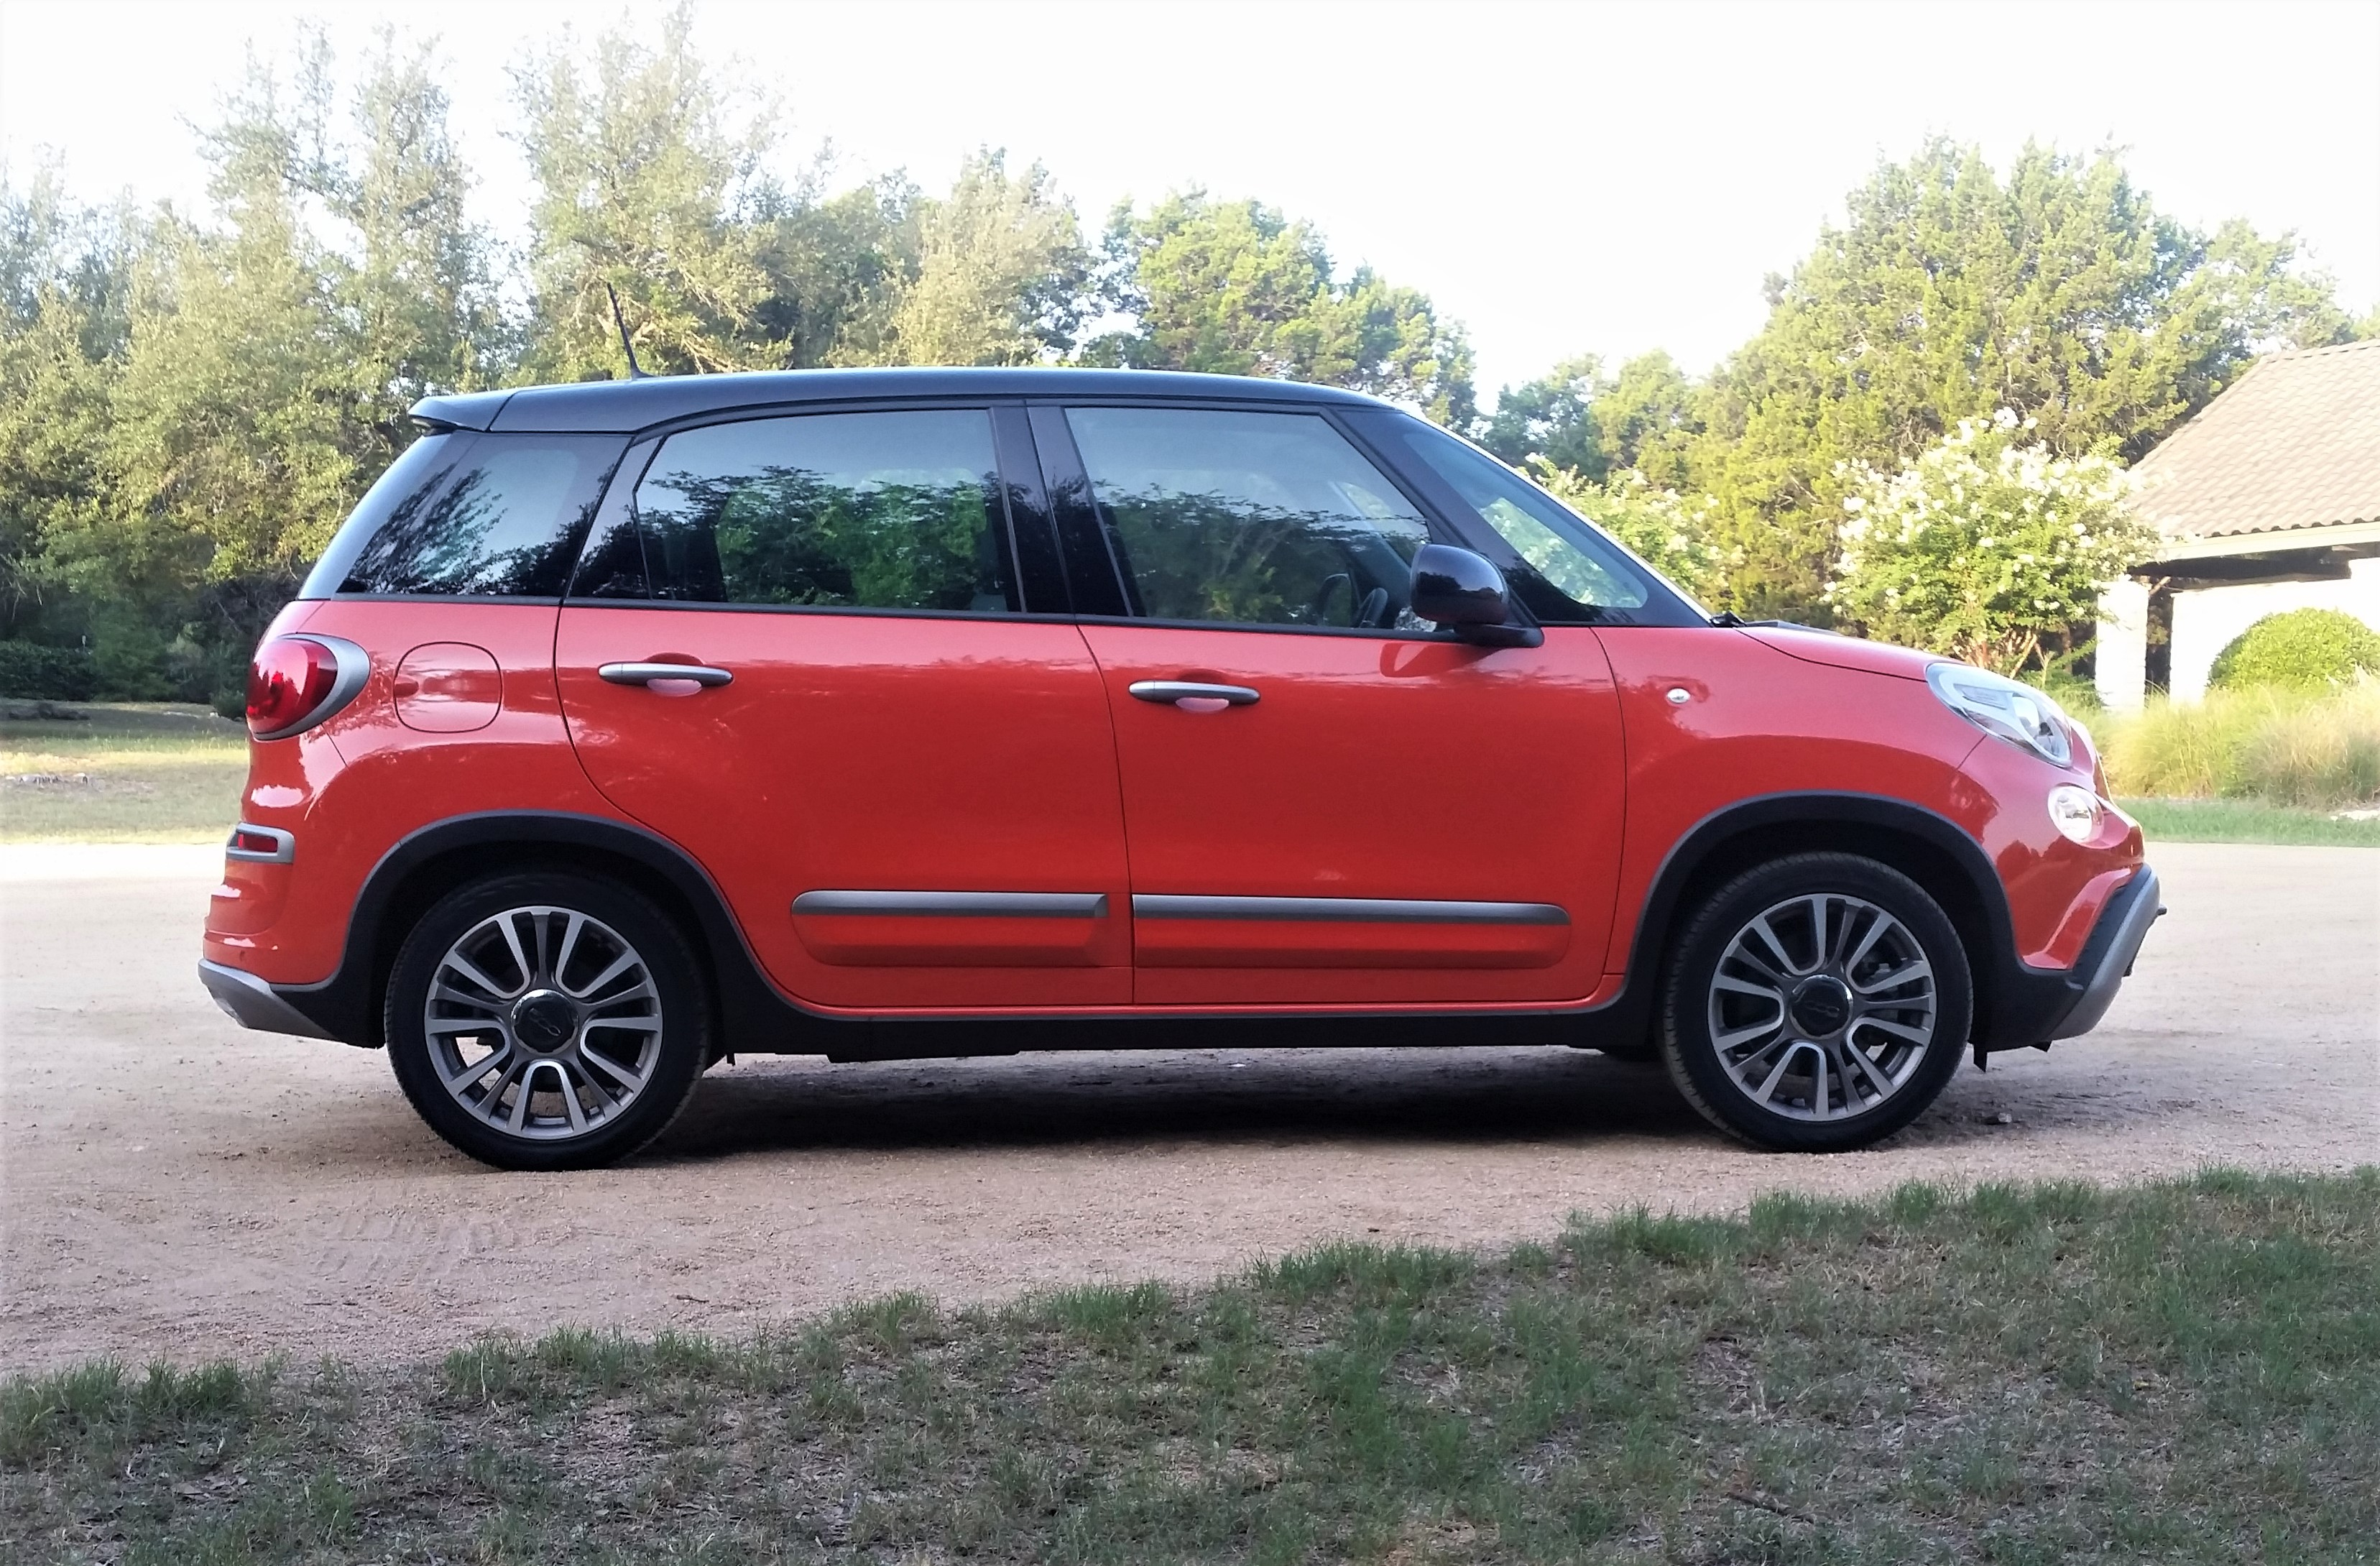 Fiat 500L Trekking: Quirky and perky? | In Wheel Time